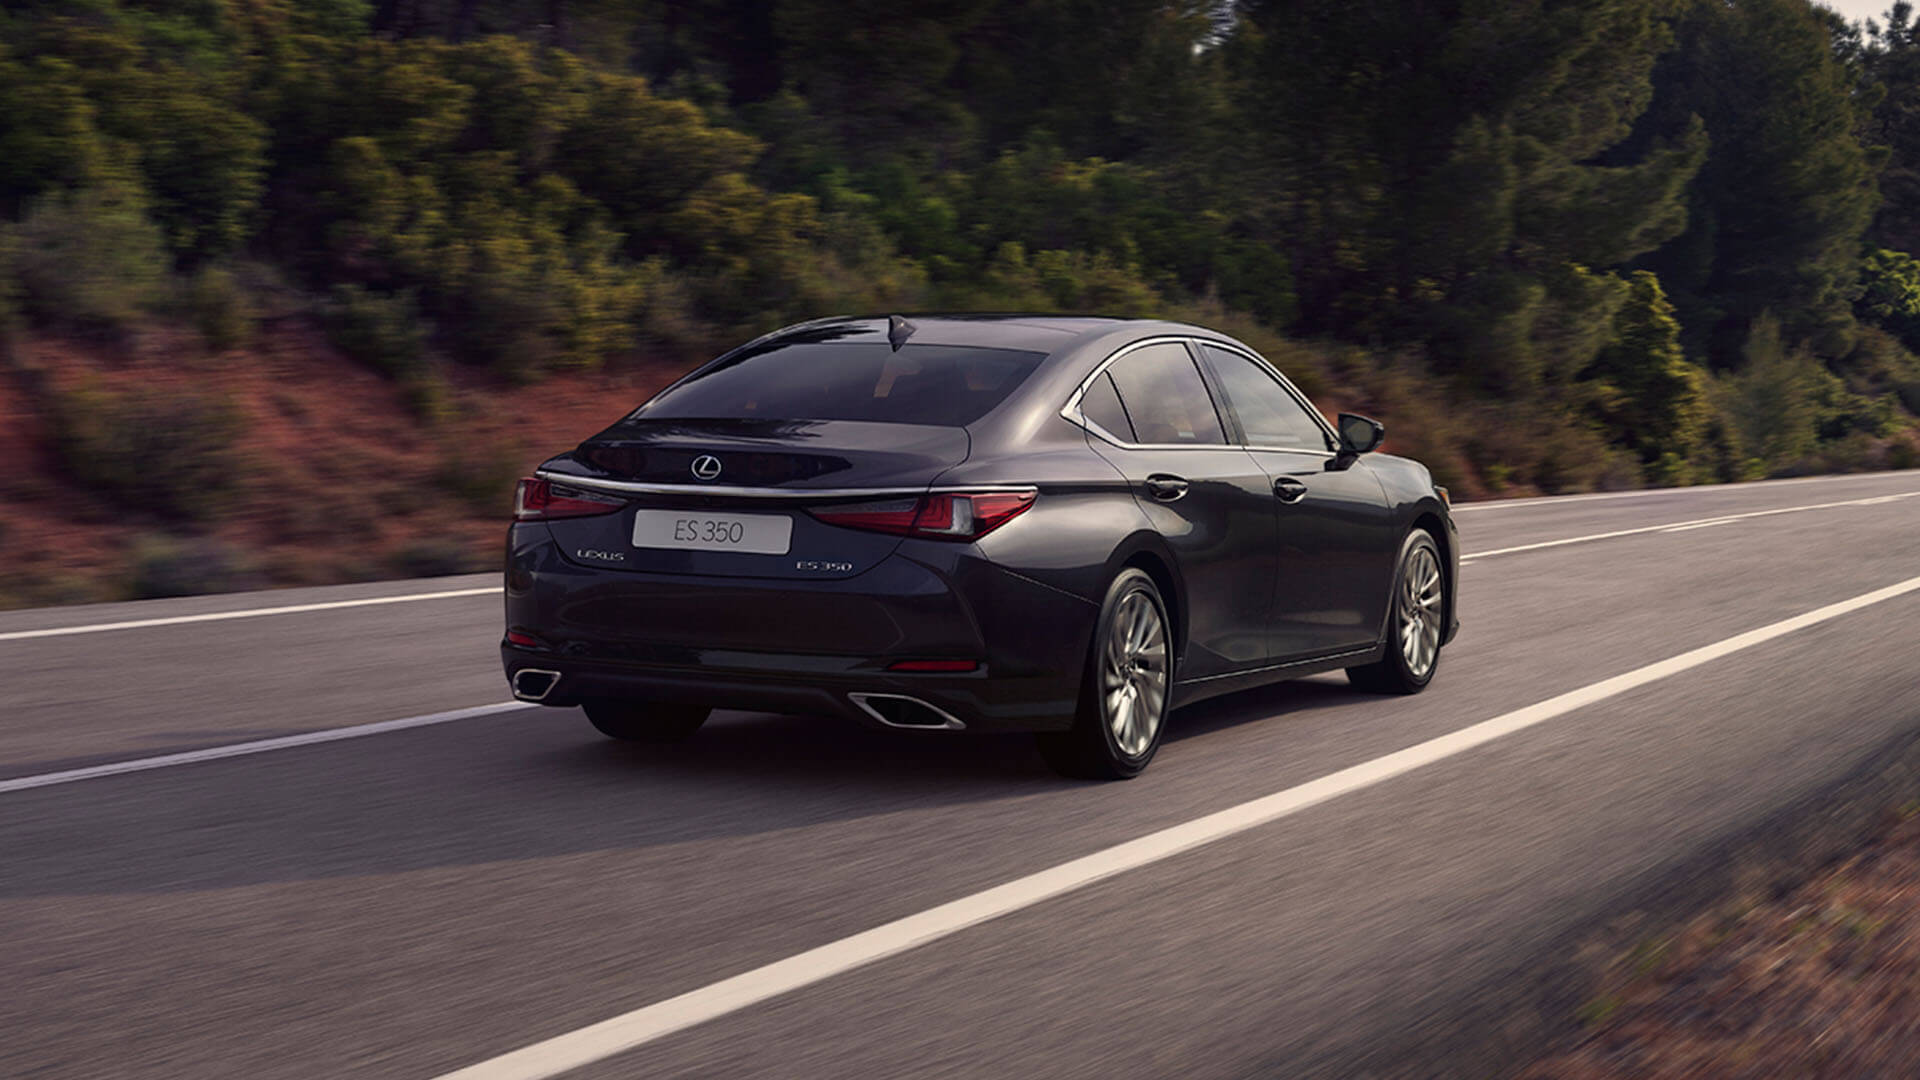 2022 RU lexus es experience exterior back coupe like silhouette